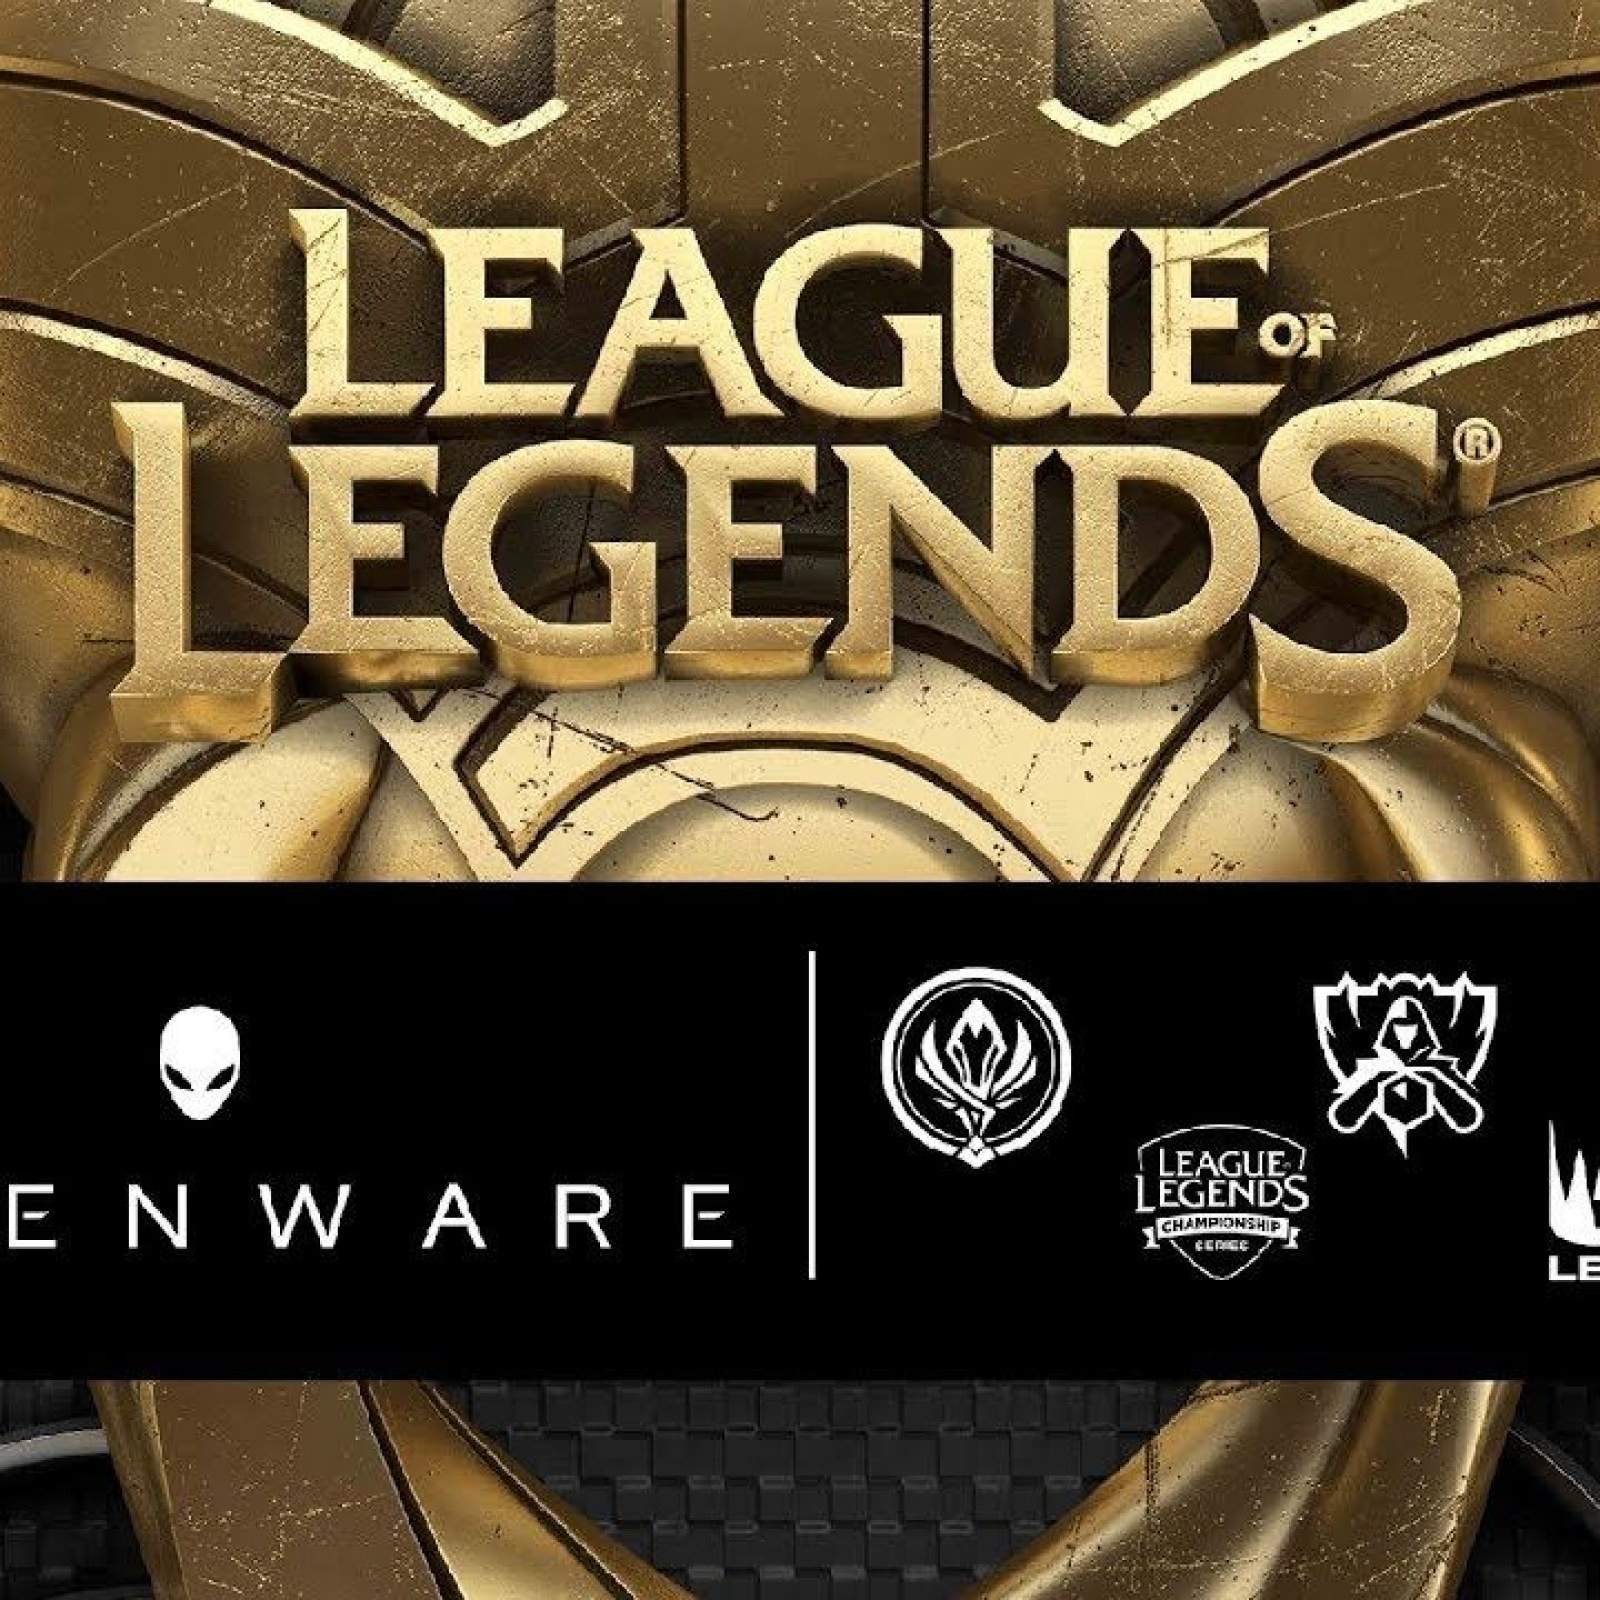 League of Legends' Partners with Alienware for Esports Events